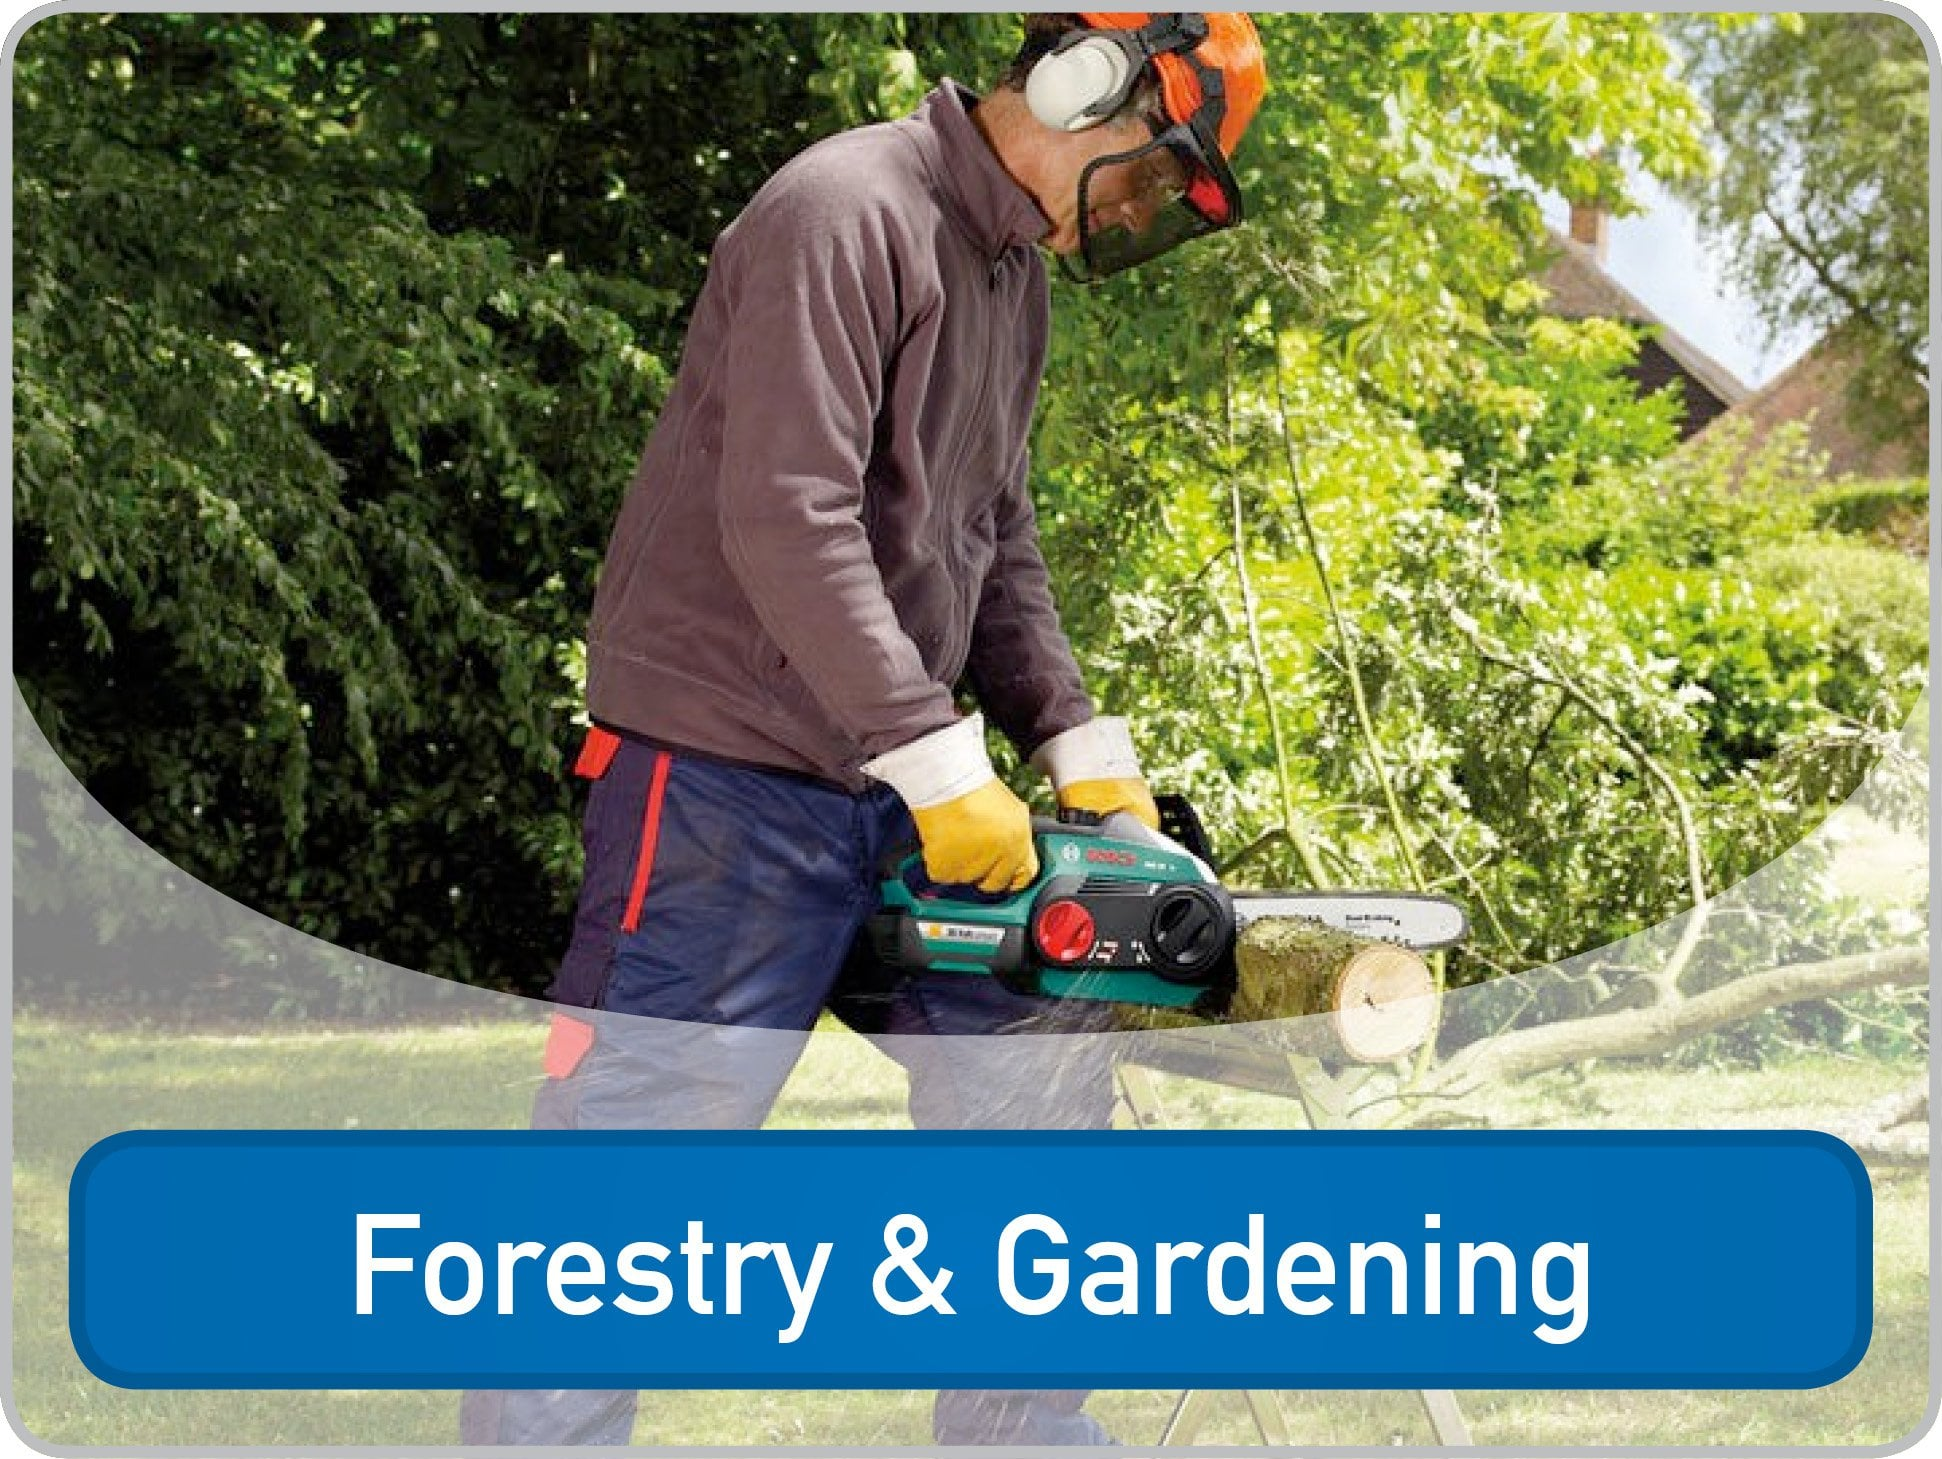 Forestry and Gardening